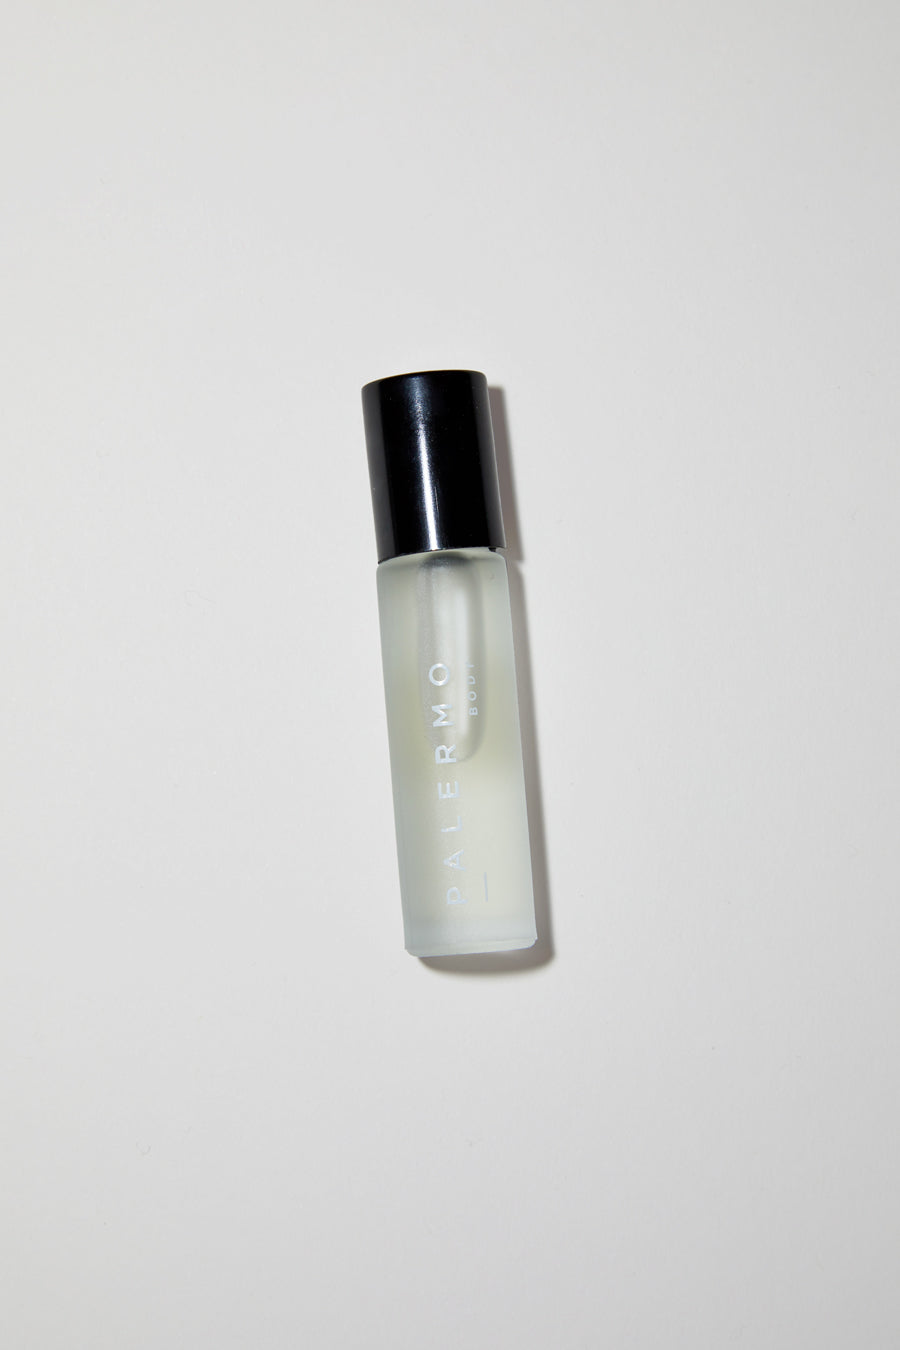 Palermo Body Enlivening Aromtherapy Oil